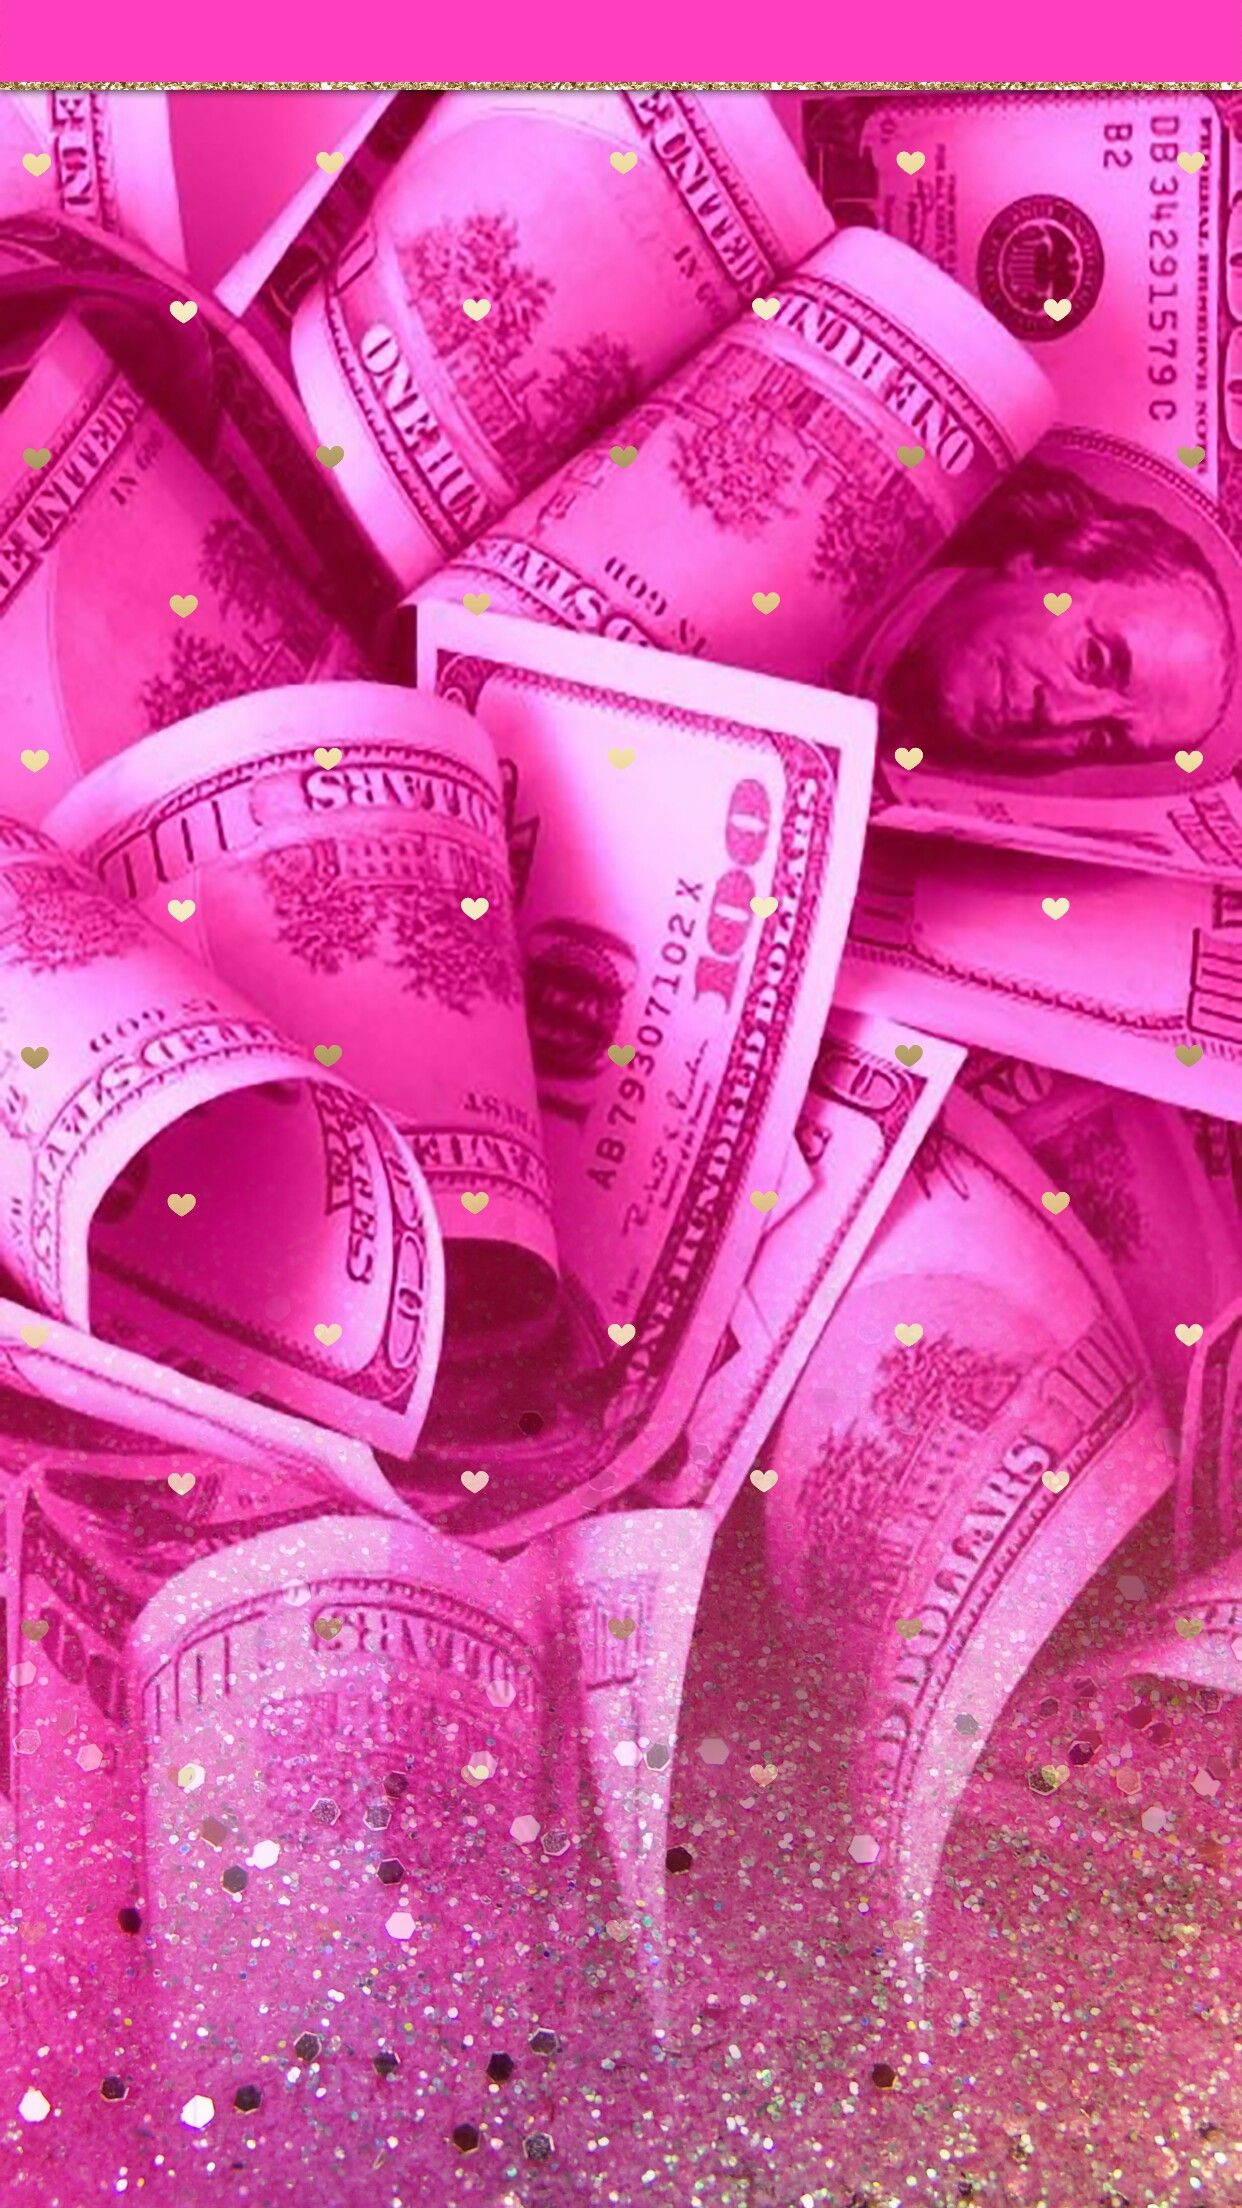 Pin By Lauryn On Wallpapers Vol 34 Pink Wallpaper Iphone Money Wallpaper Iphone Pink Aesthetic